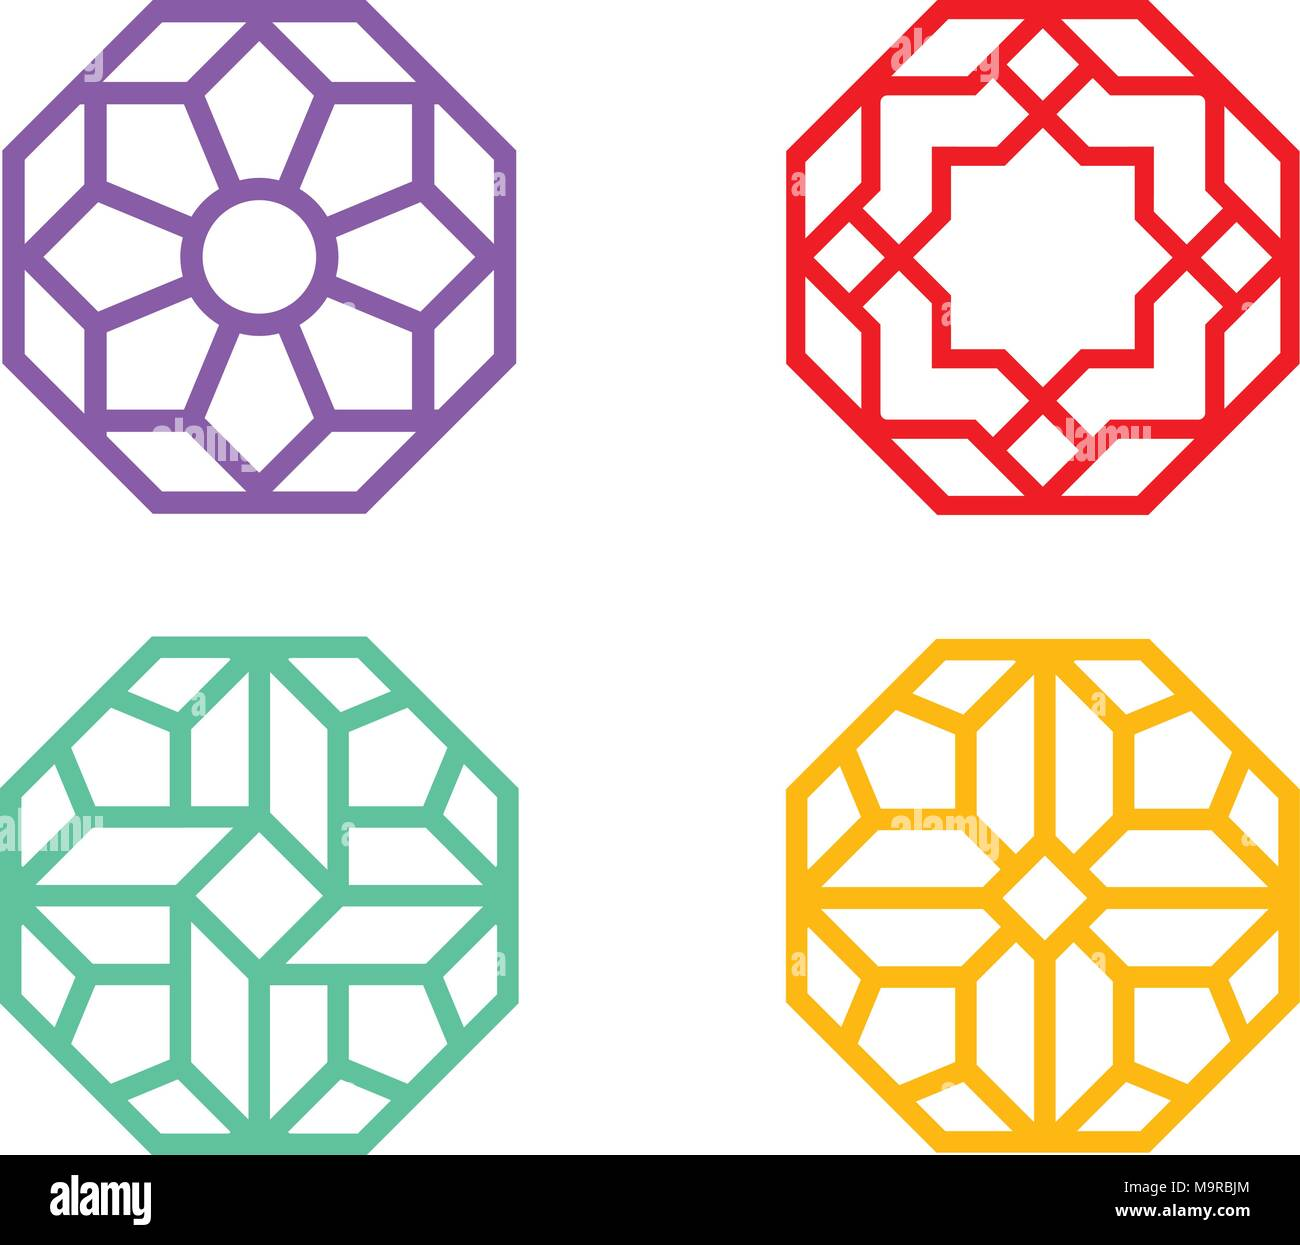 Octagon Stock Vector Images - Alamy